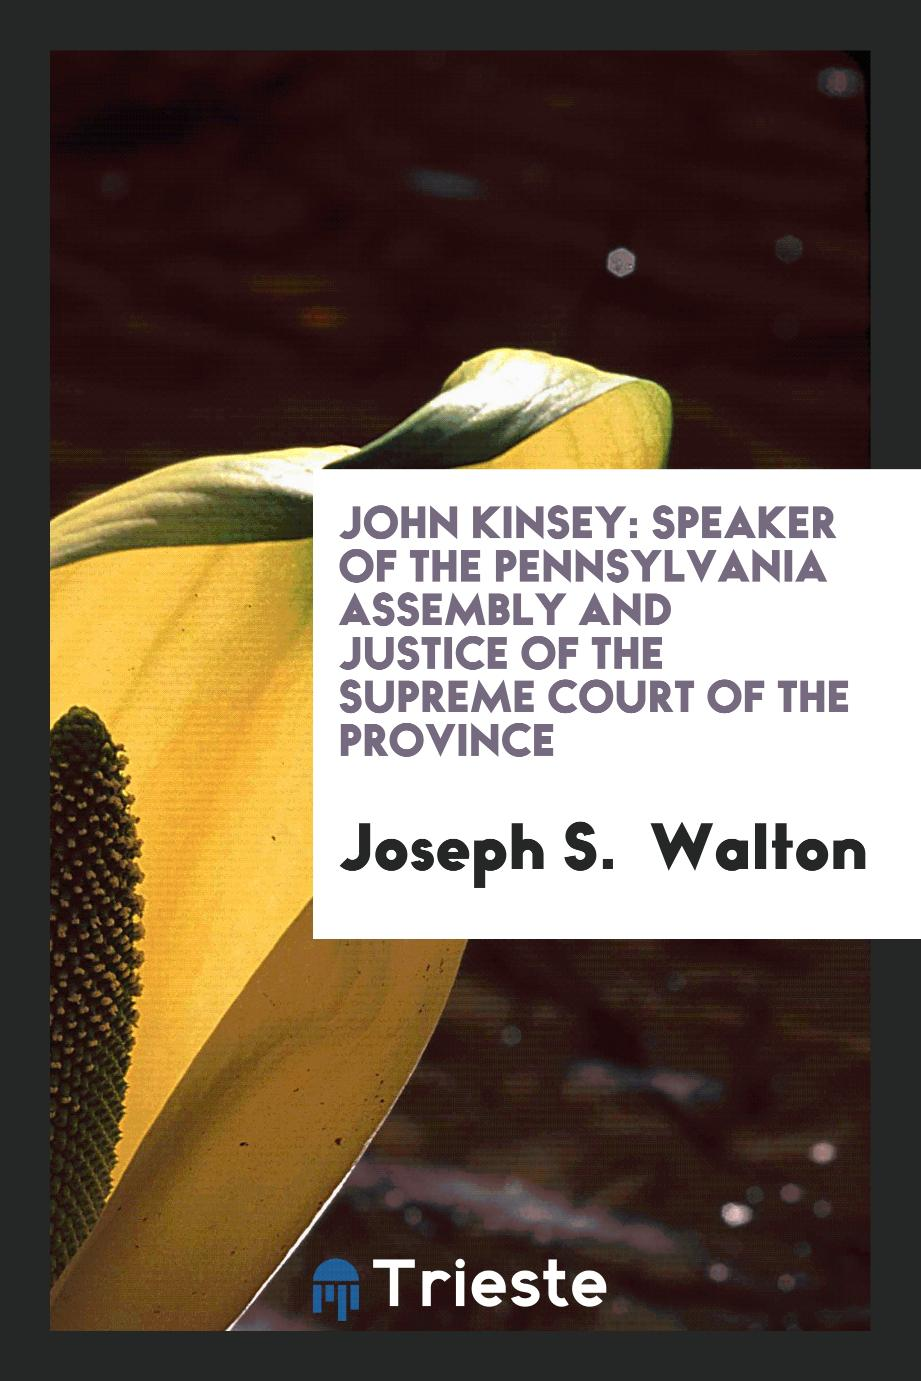 John Kinsey: Speaker of the Pennsylvania Assembly and Justice of the Supreme Court of the Province